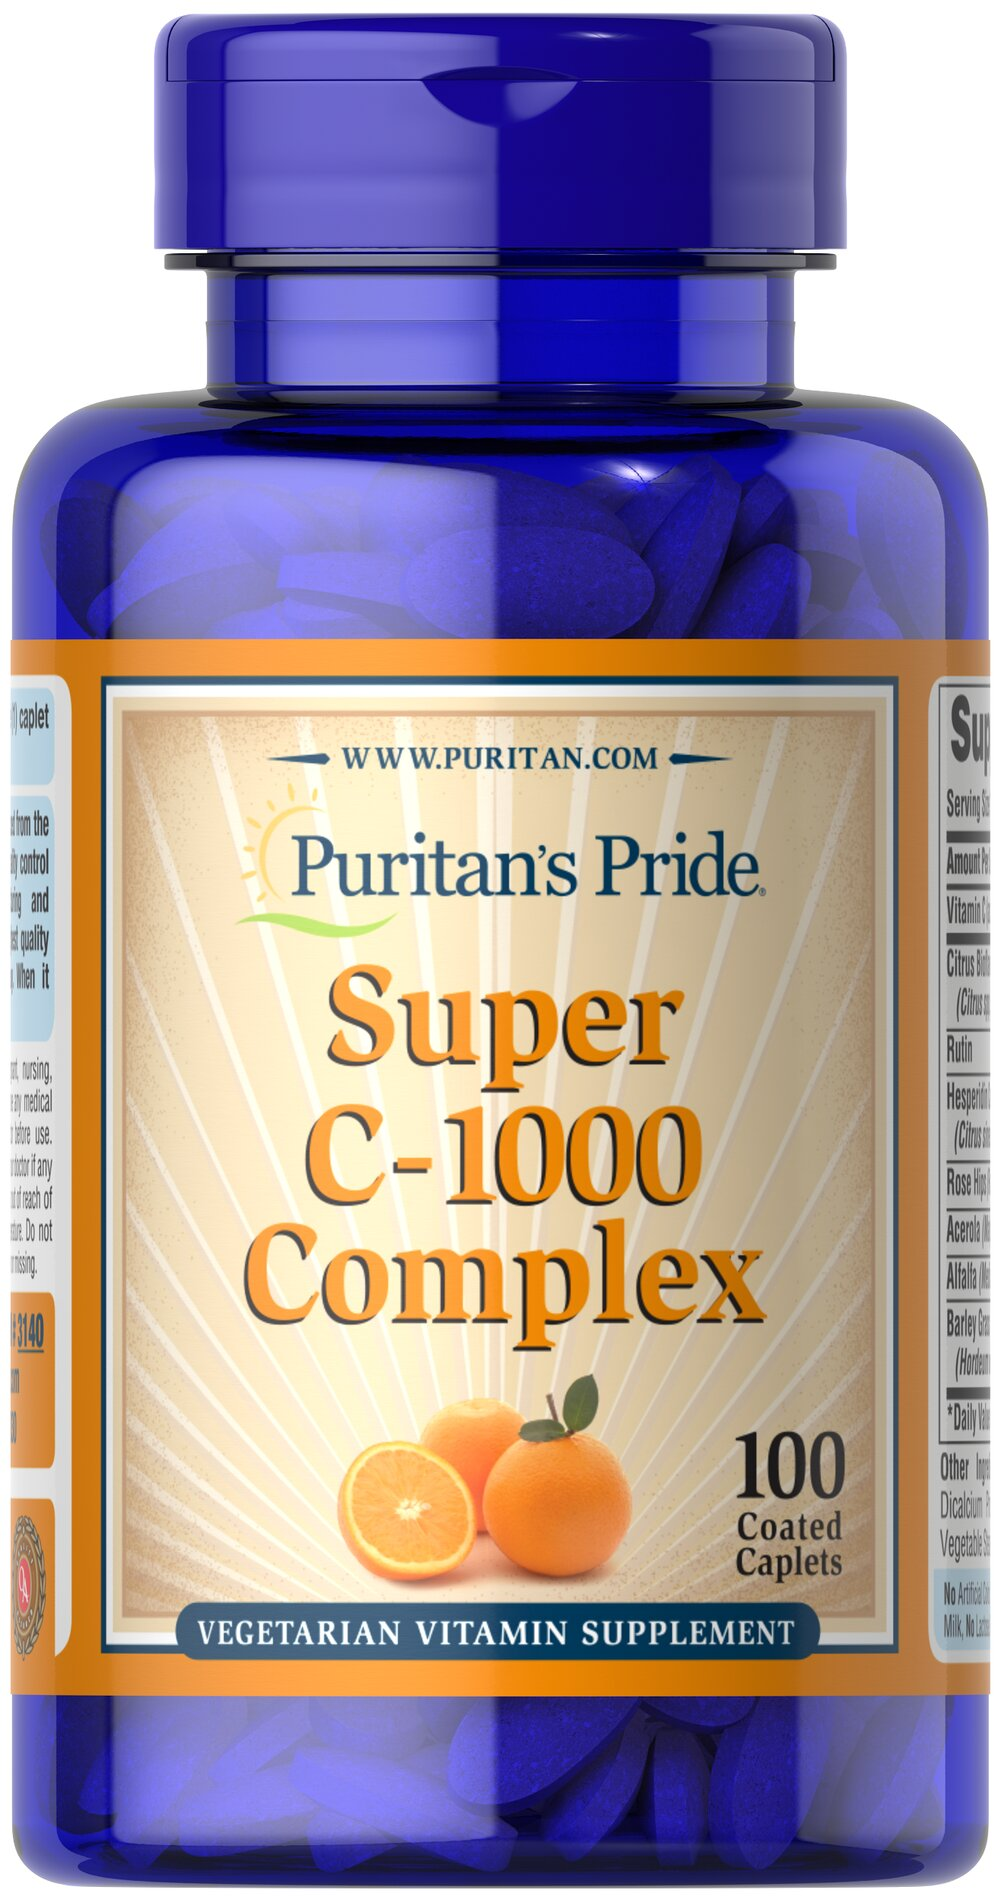 C-1000 Complex™ <p>Vitamin C  is essential to many functions in the body and is one of the leading vitamins for immune support.** Our C-complex includes potent Vitamin C as Ascorbic Acid. We also include Citrus Bioflavonoids, Rose Hips, Rutin, and Acerola.**</p><p>Offers superior antioxidant support.**</p><p>Supports healthy immune function and promotes well-being.**</p> 100 Coated Caplets 1000 mg $15.99